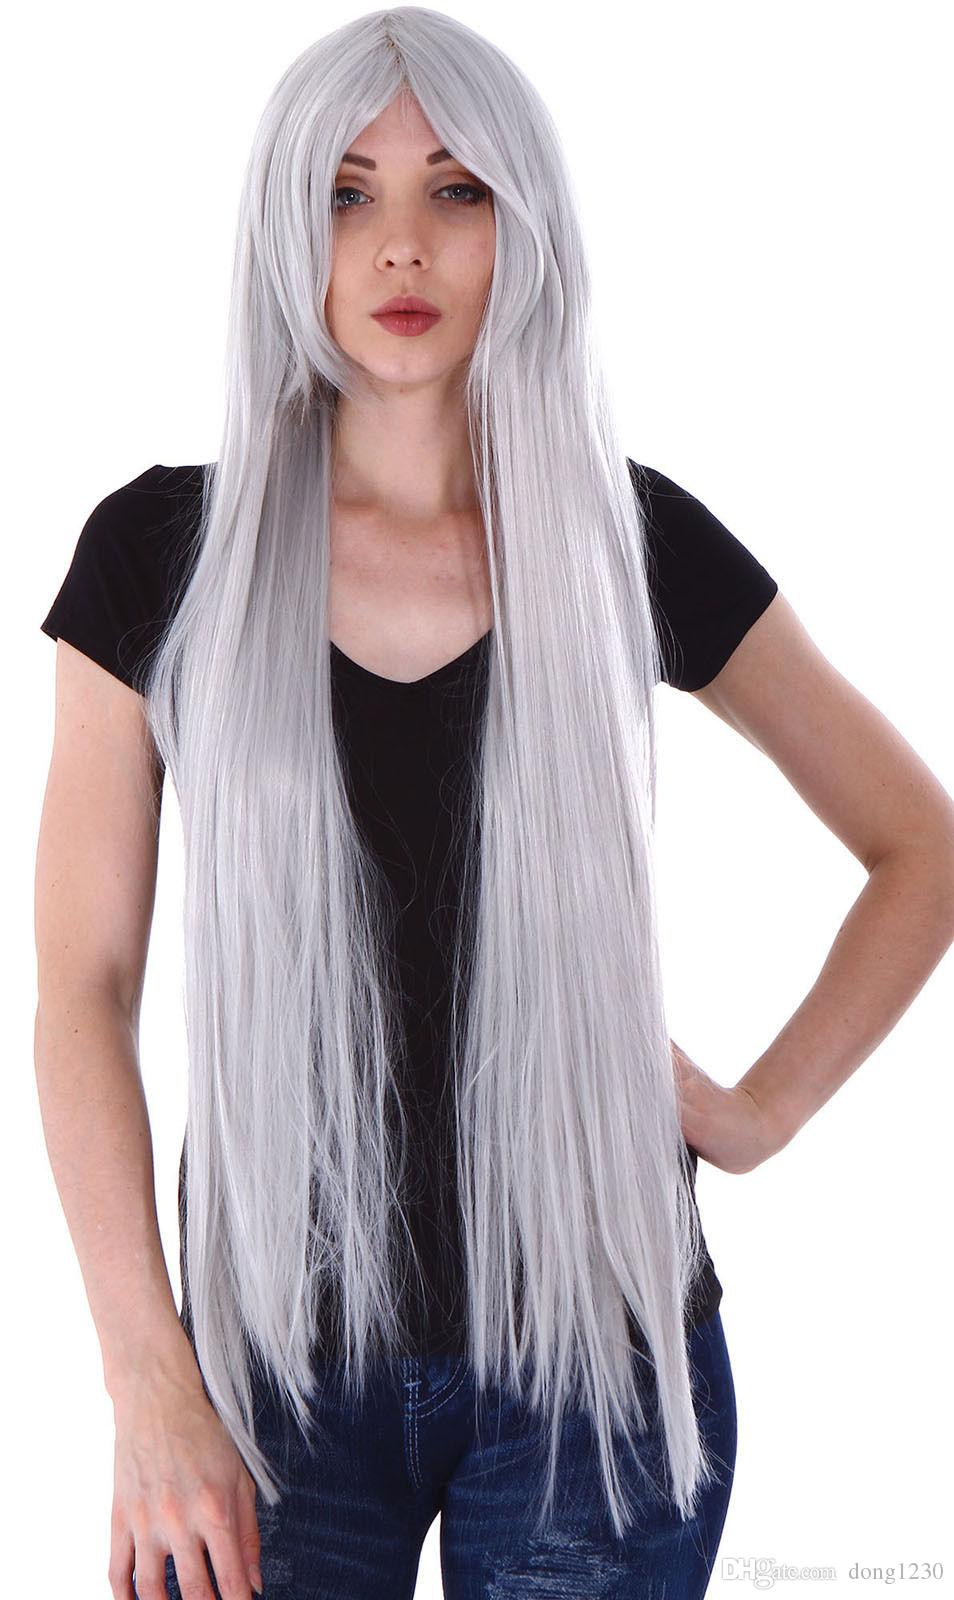 100cm Long Women Straight Hair Wig Fancy Dress Costume Party Cosplay Full  Wigs Younique Lace Wigs Online Wigs From Dong1230 ec8a95a79c0e